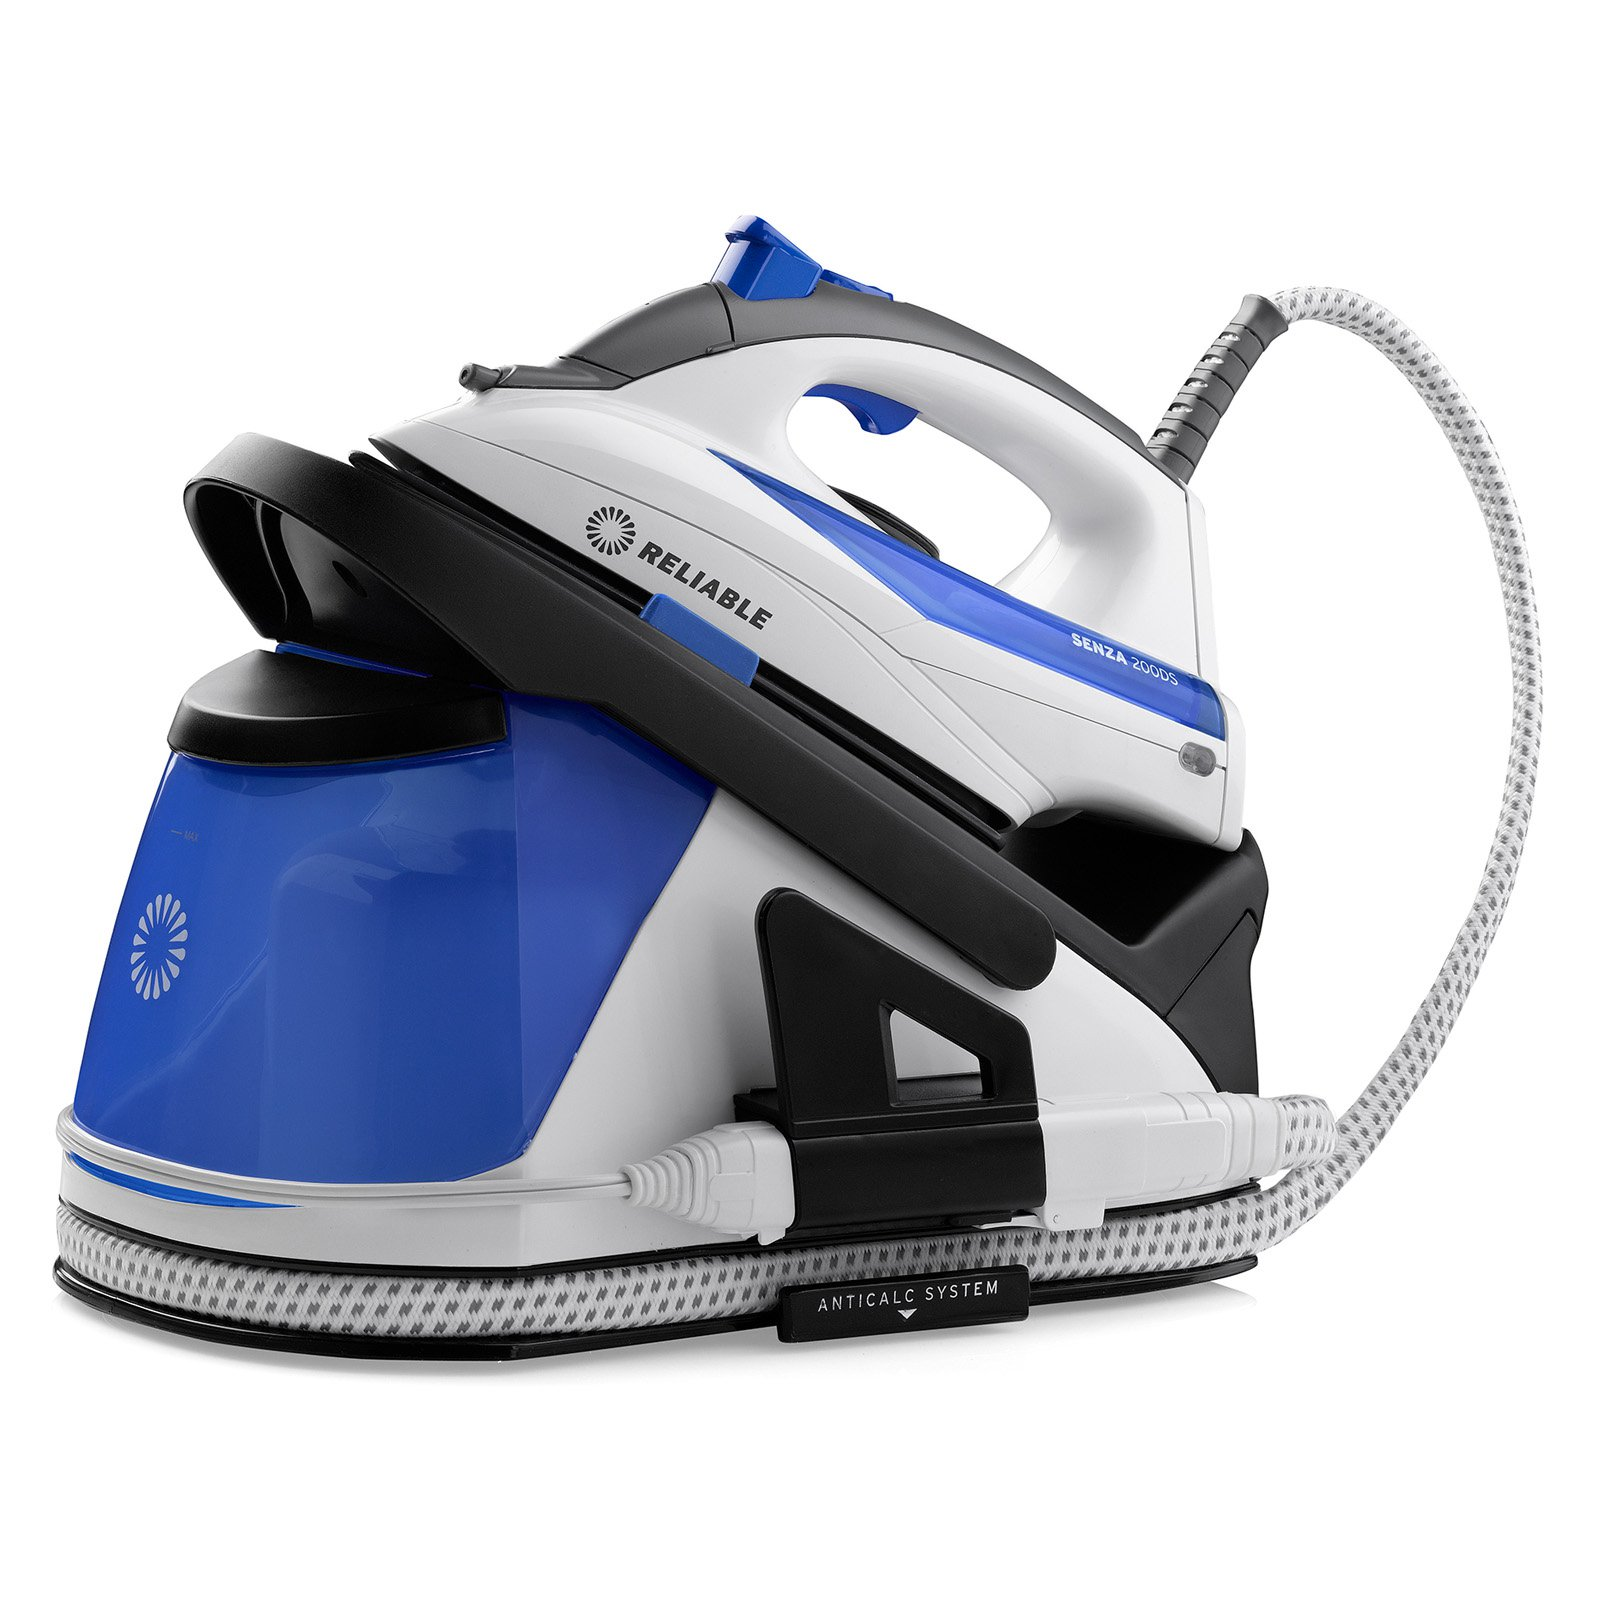 Reliable Senza Dual Performance Home Steam Ironing Station, White and Blue, 200DS